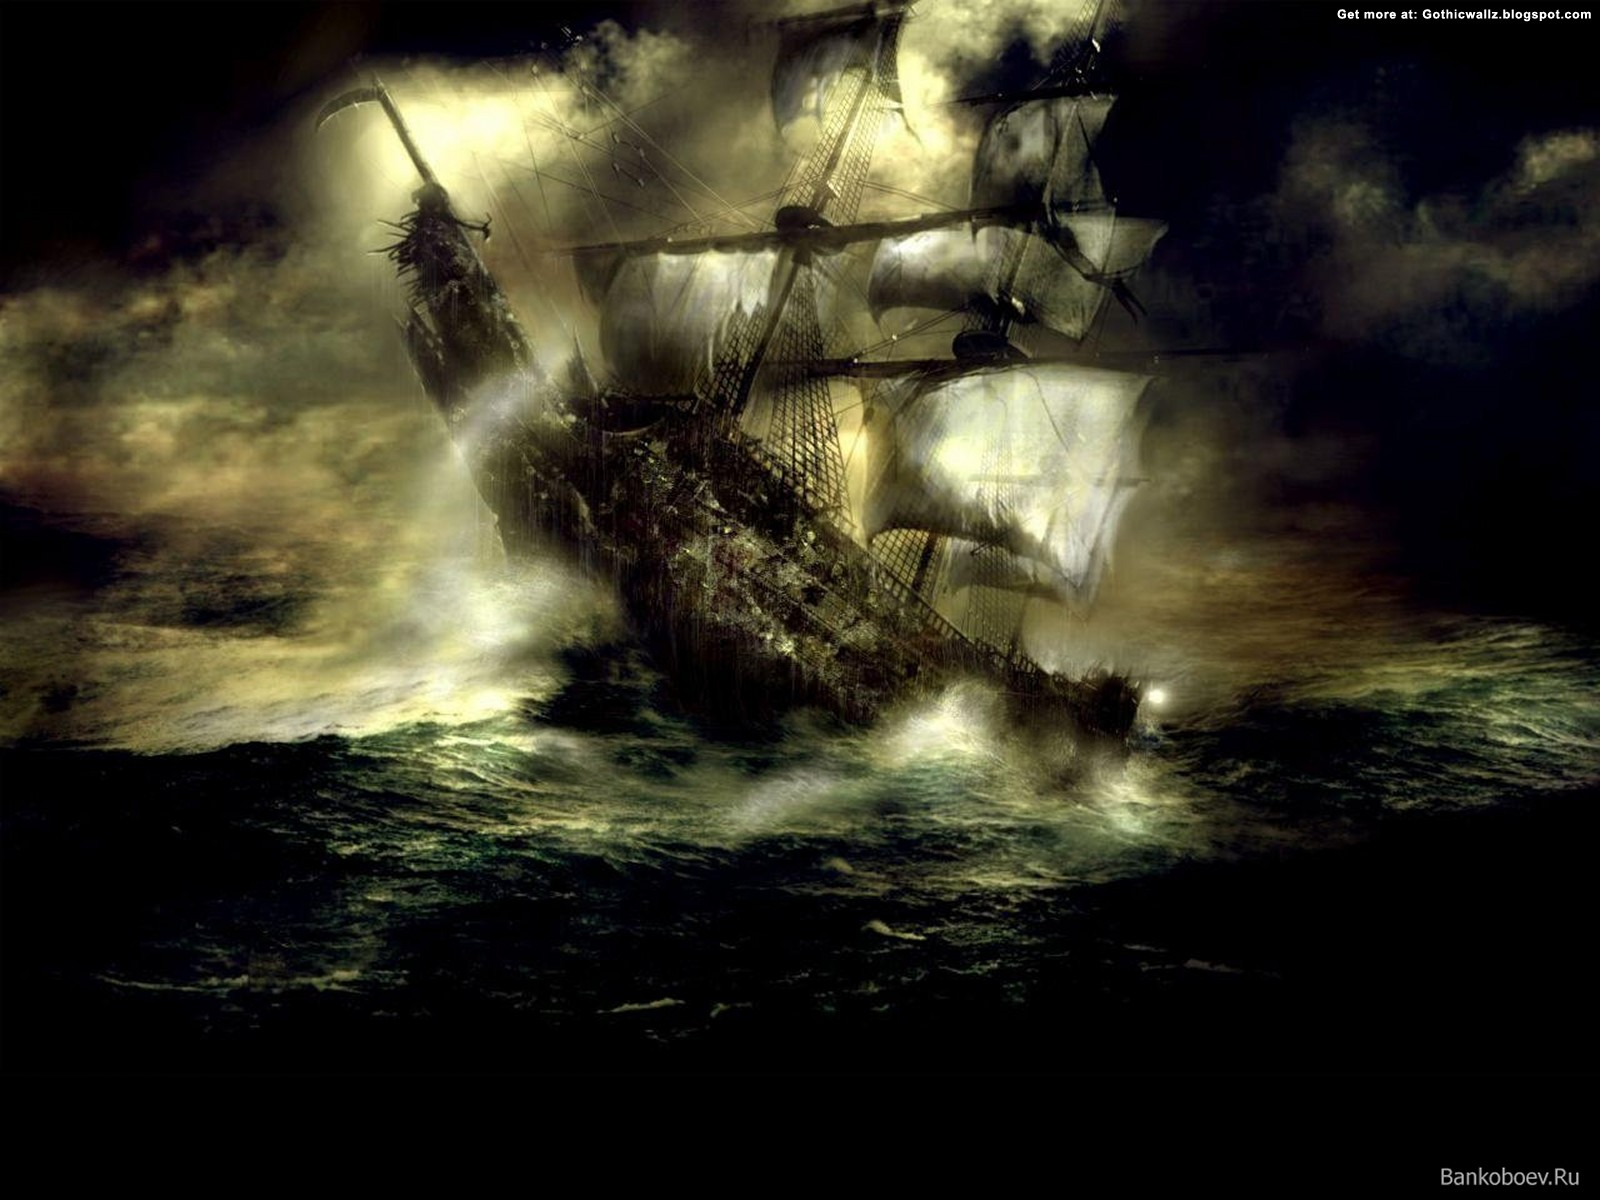 Gothic Warship | Gothic Wallpaper Download